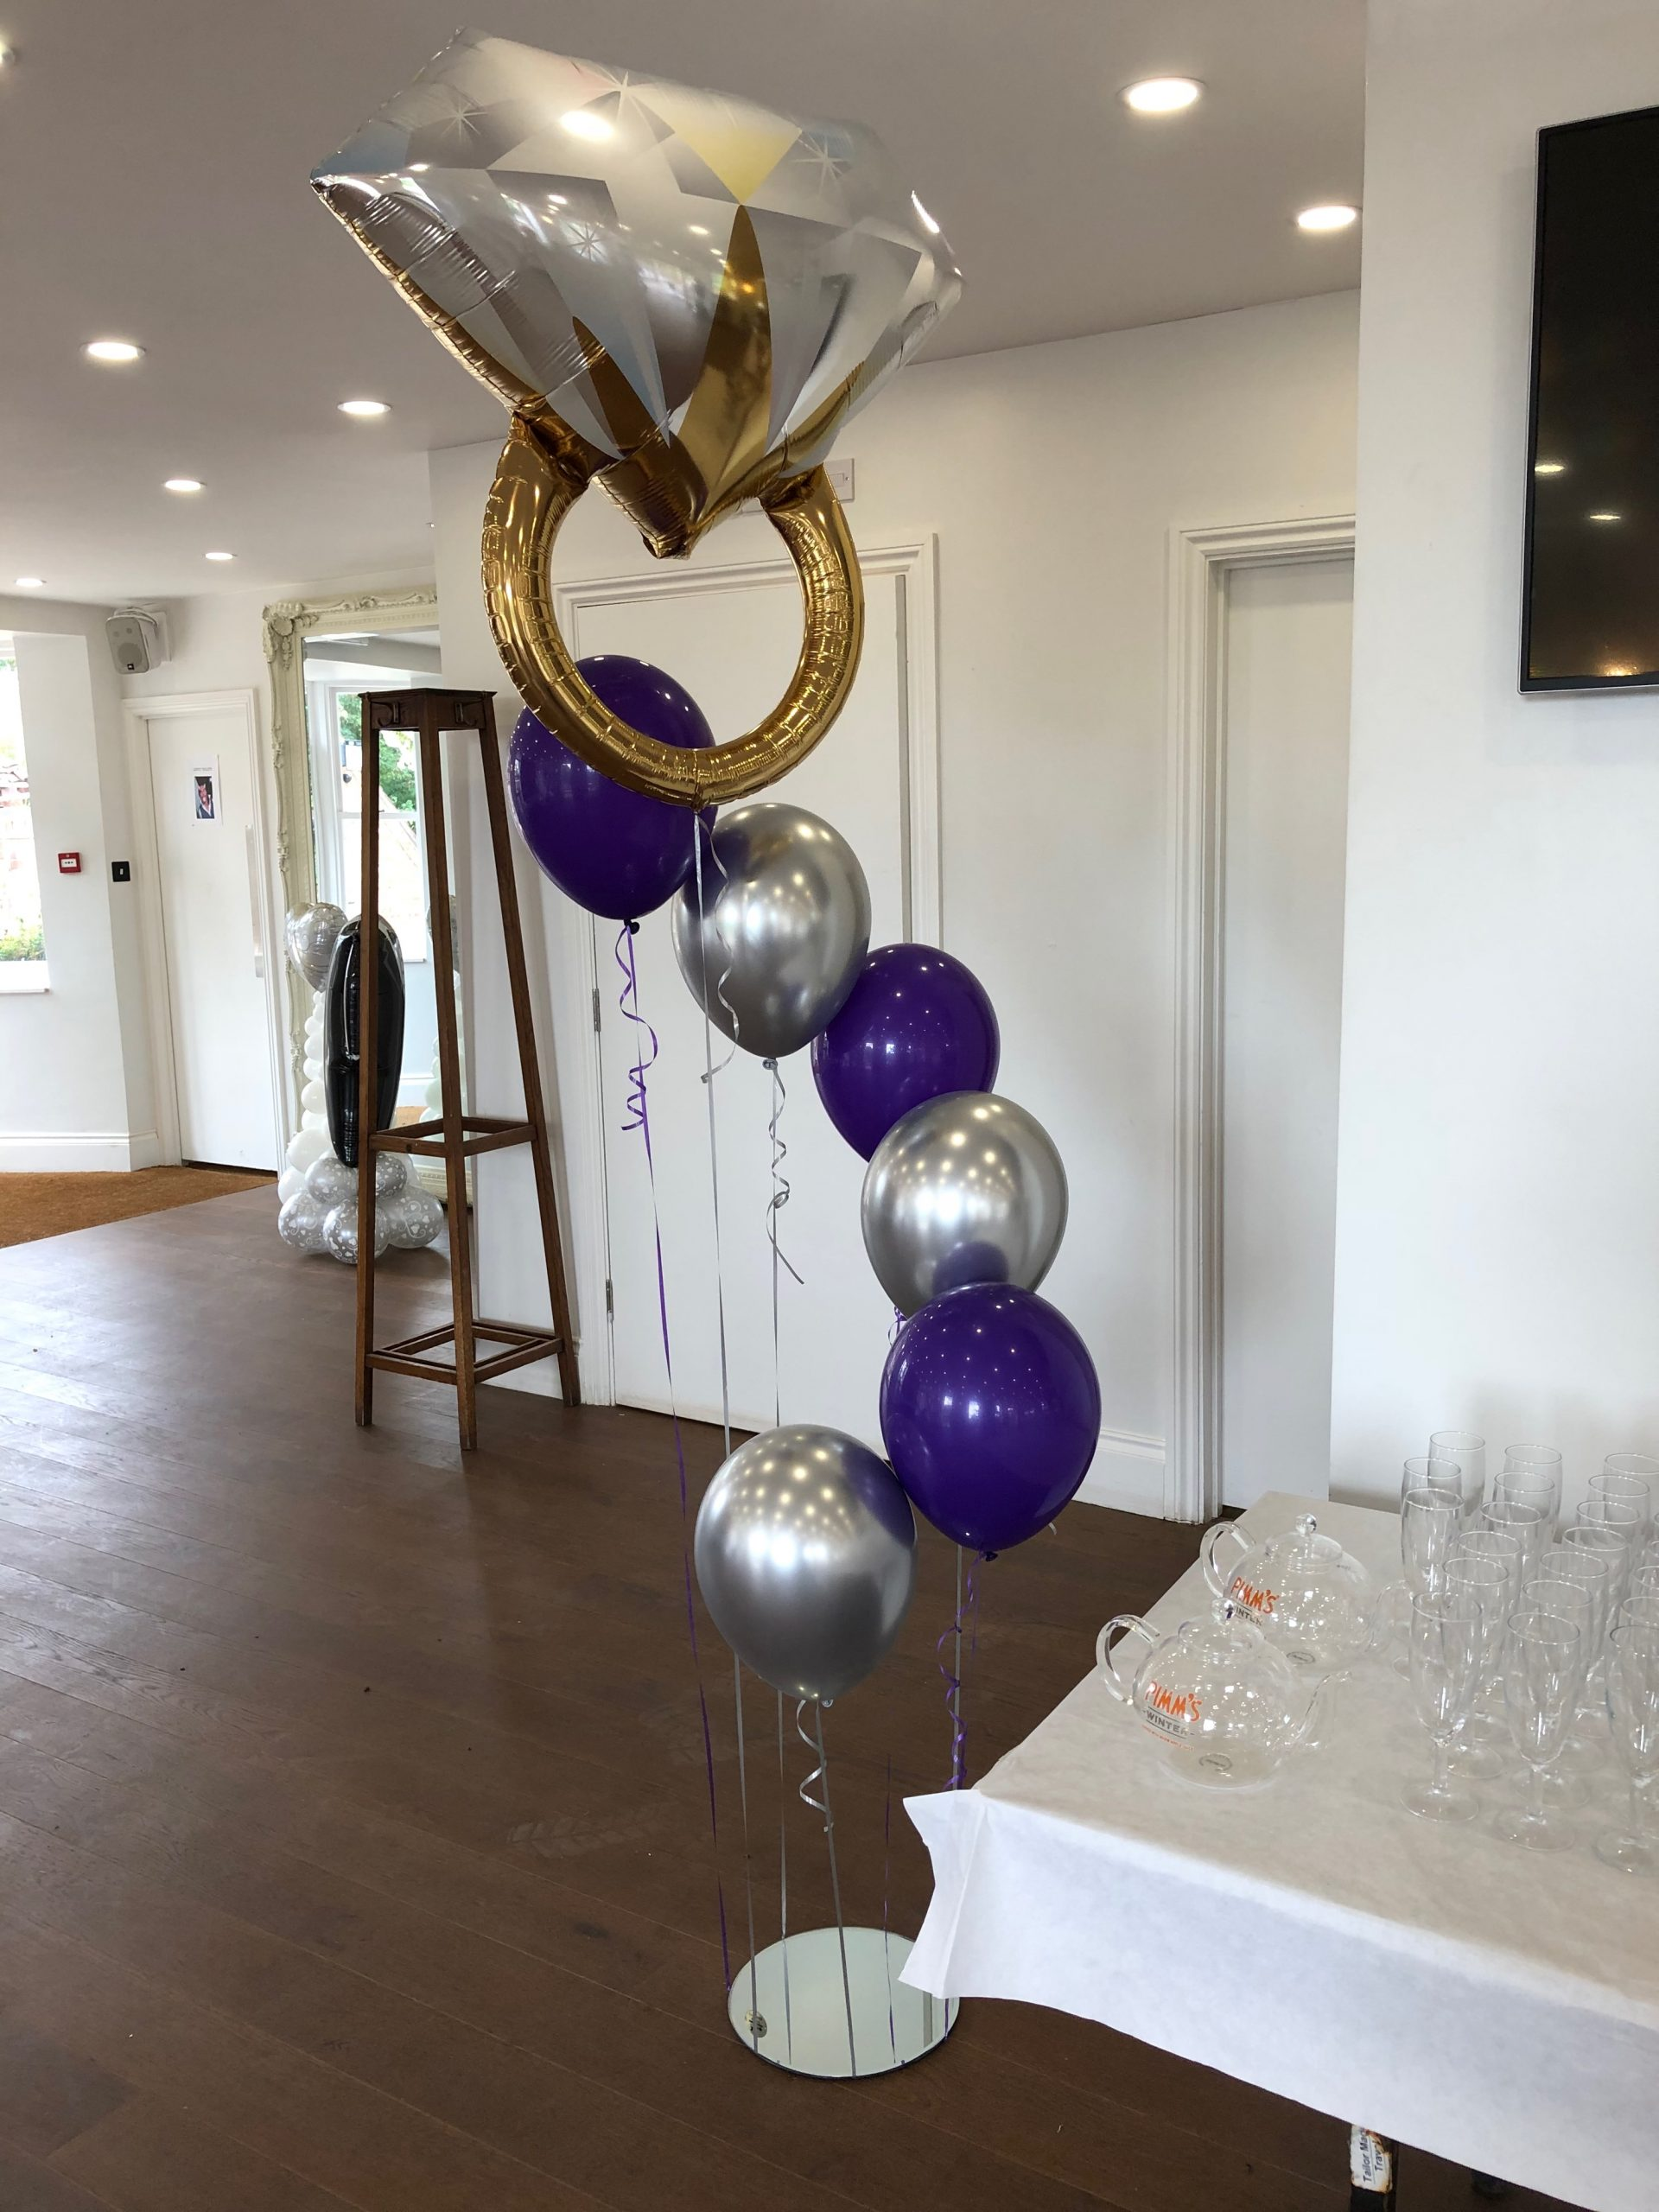 Spiral of floating wedding balloons with ring